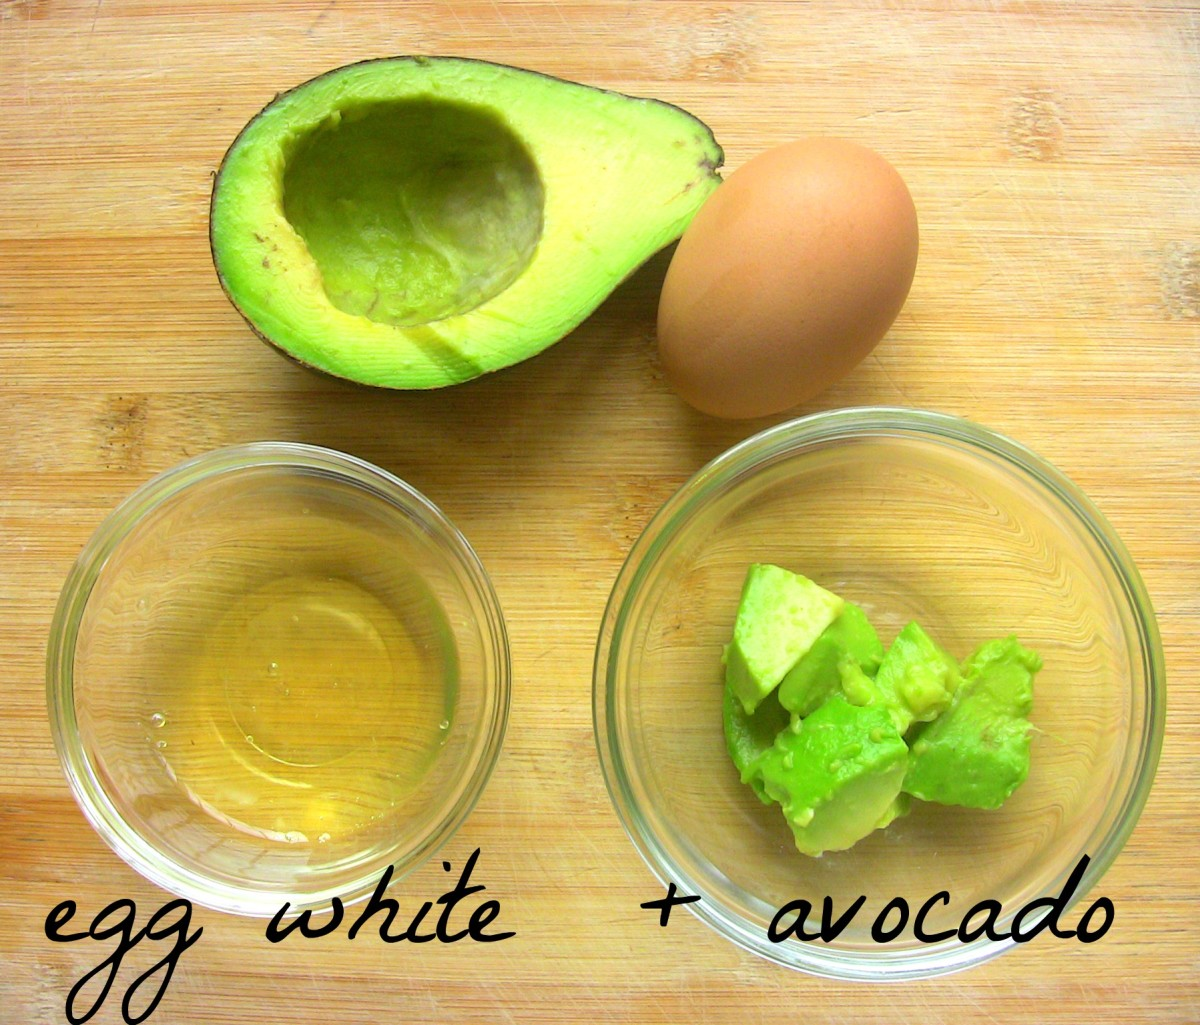 Avocado & Egg White are a nourishing combination for beautiful skin.